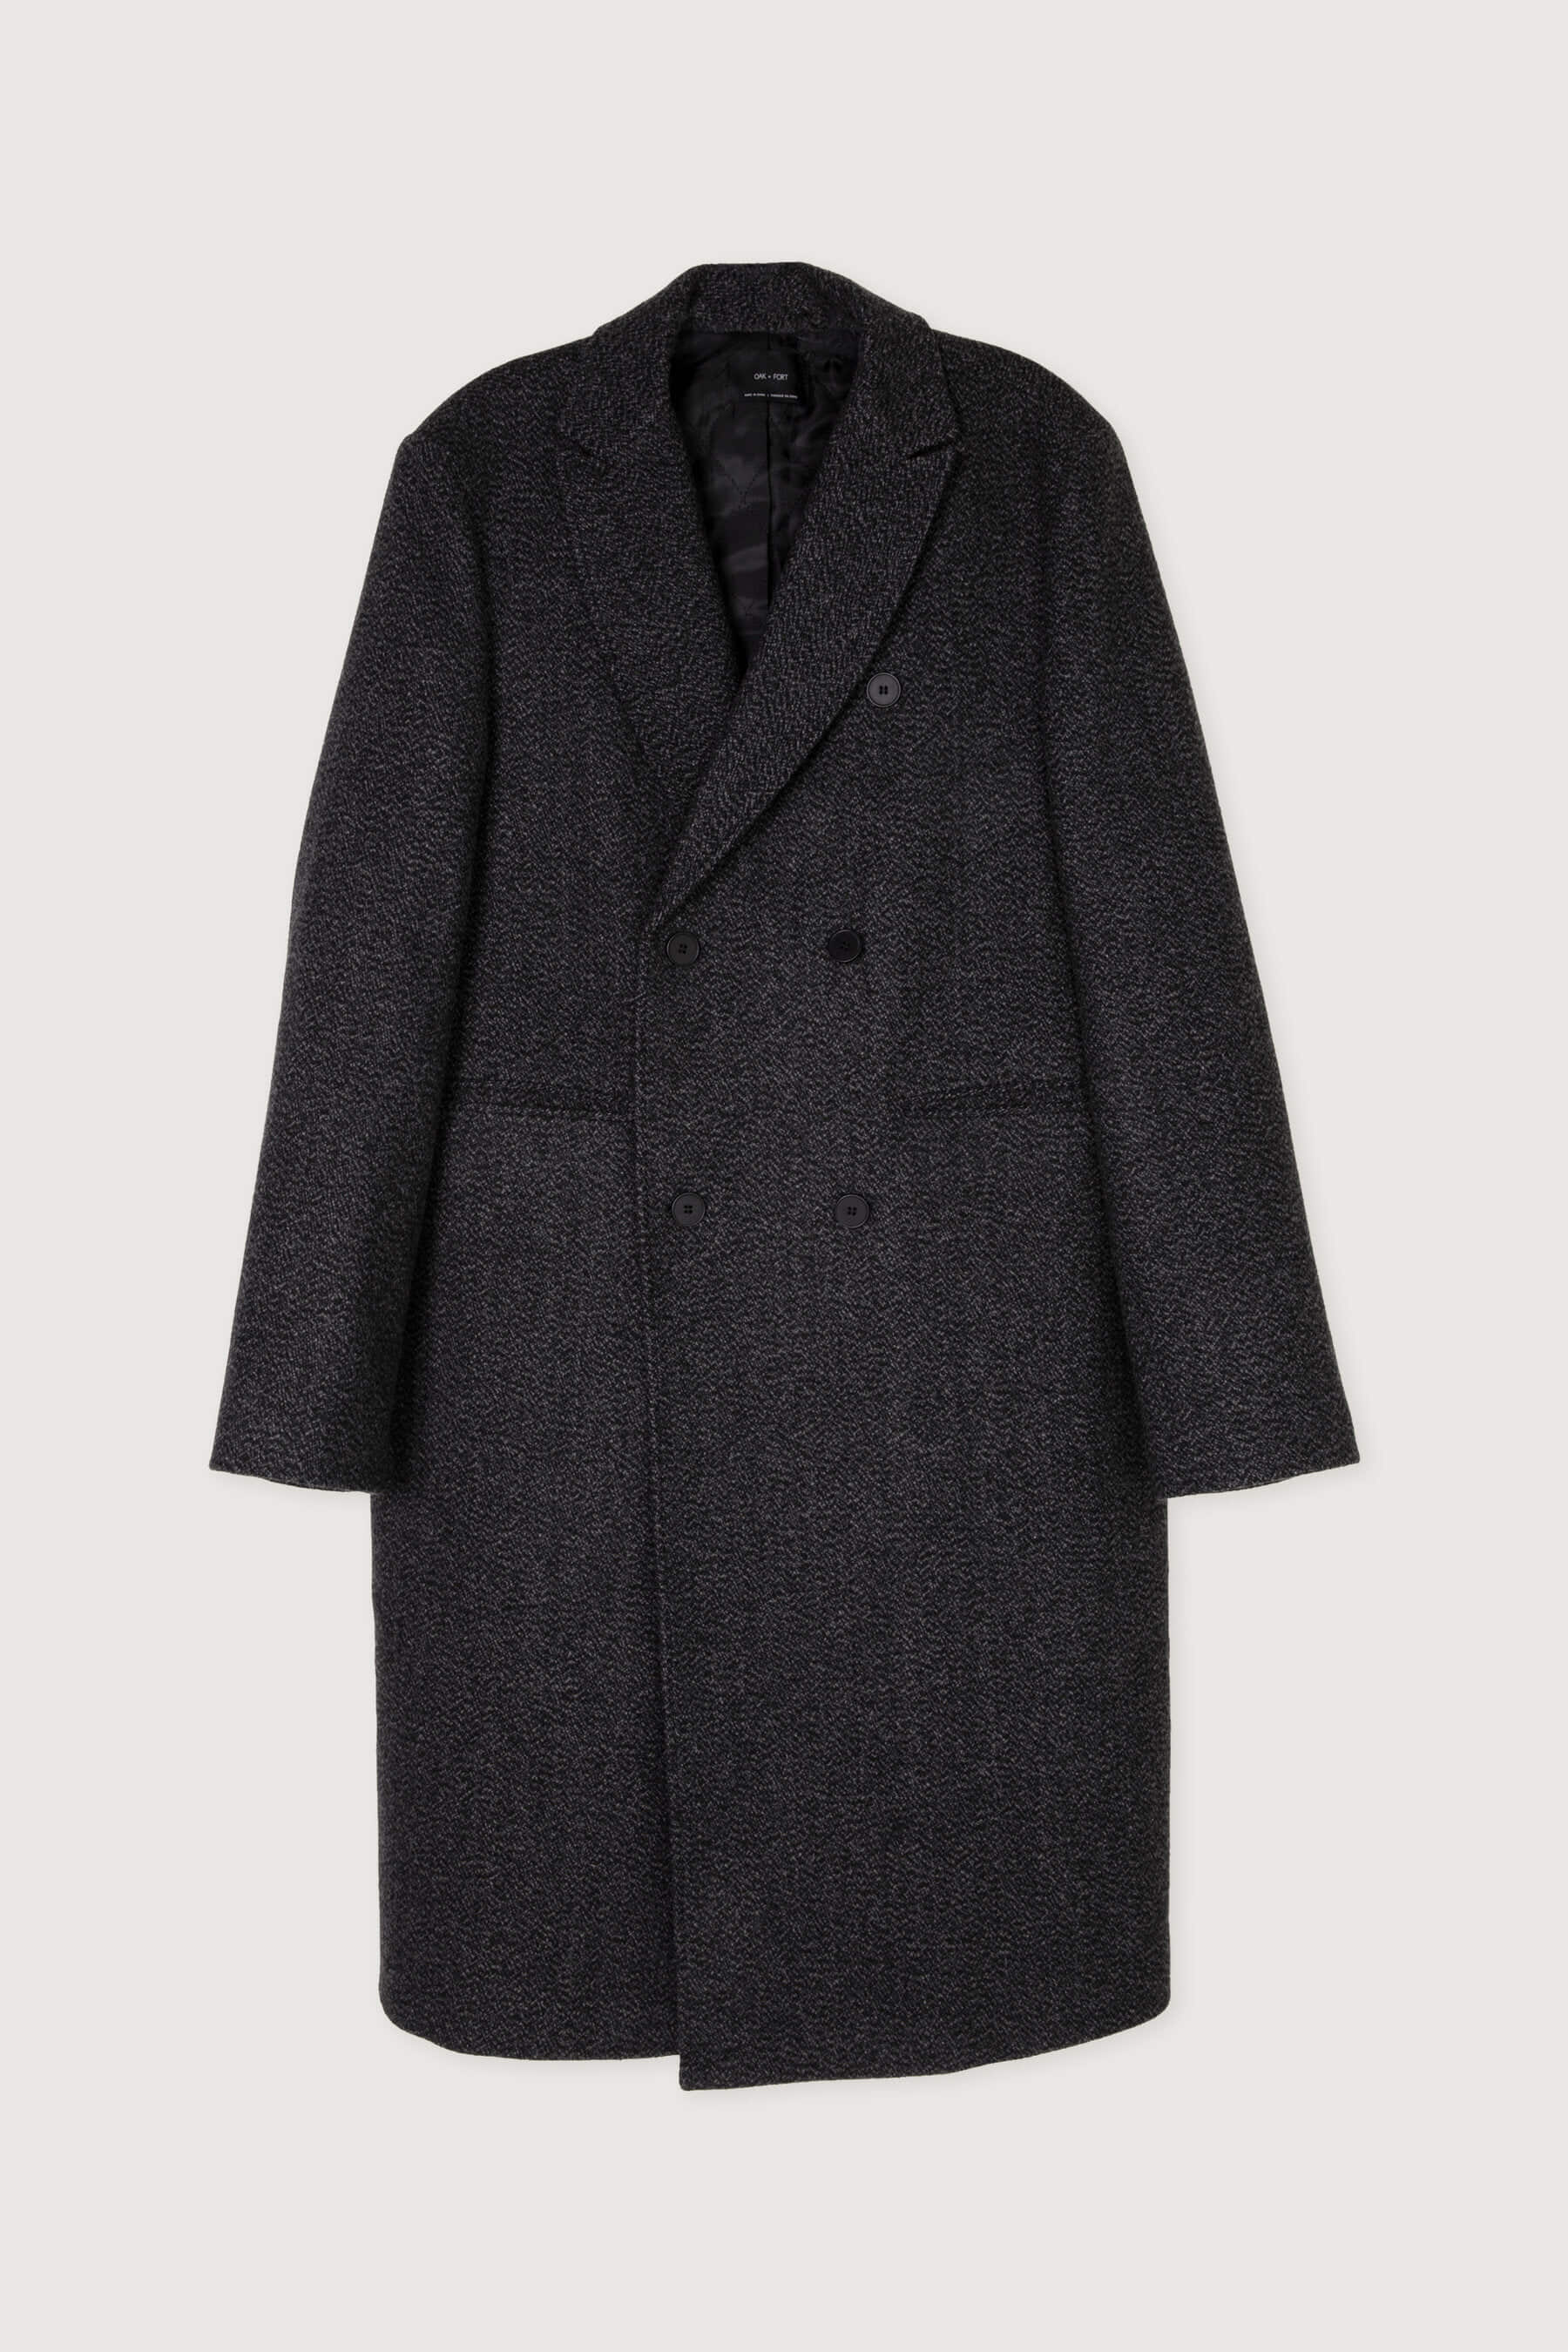 Coat 3934 by Oak + Fort